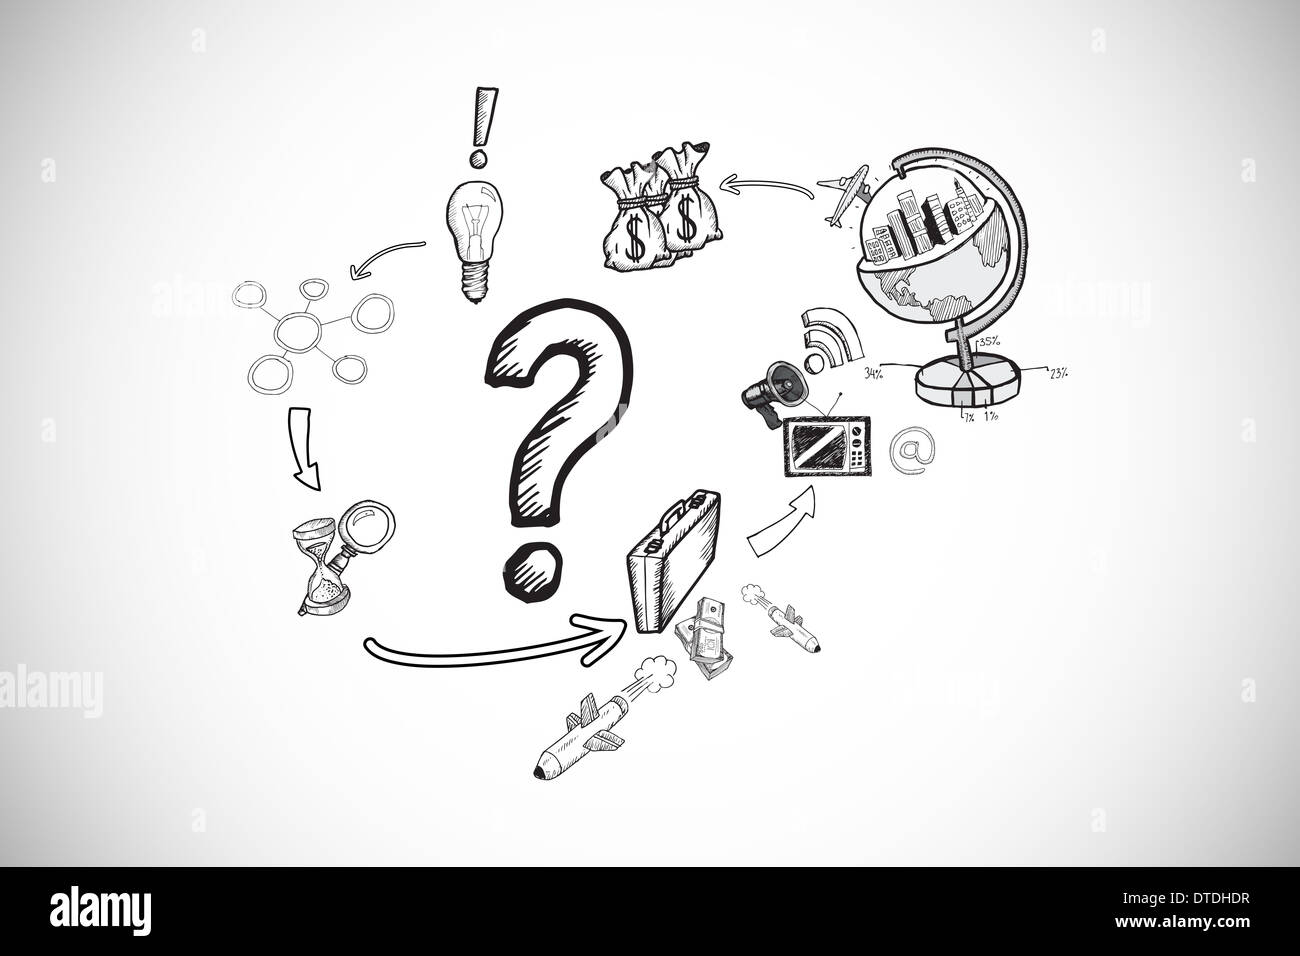 Composite image of question mark with earth and profit doodles - Stock Image